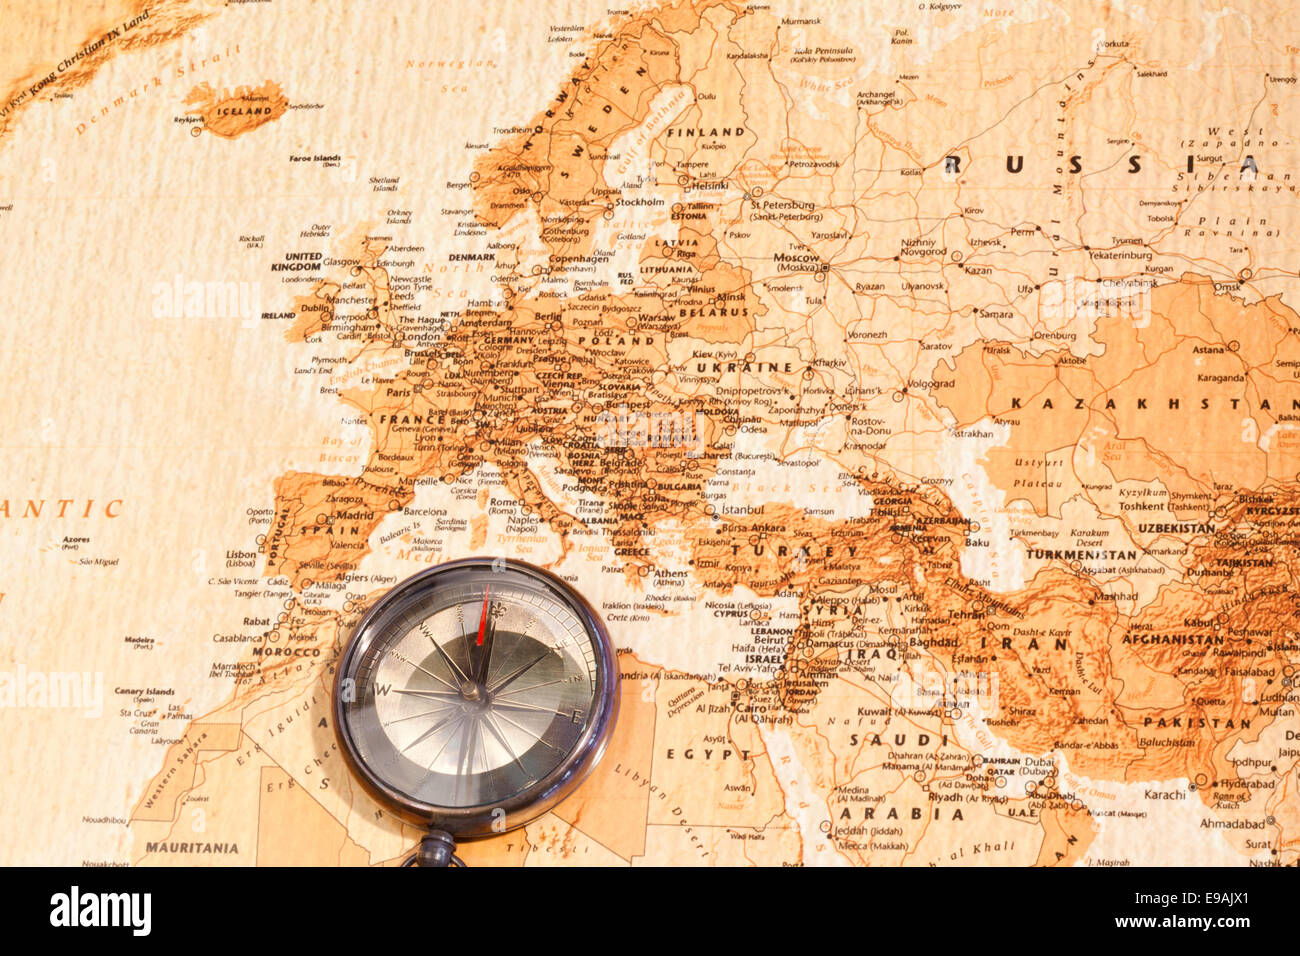 World map with compass showing Eurasia - Stock Image